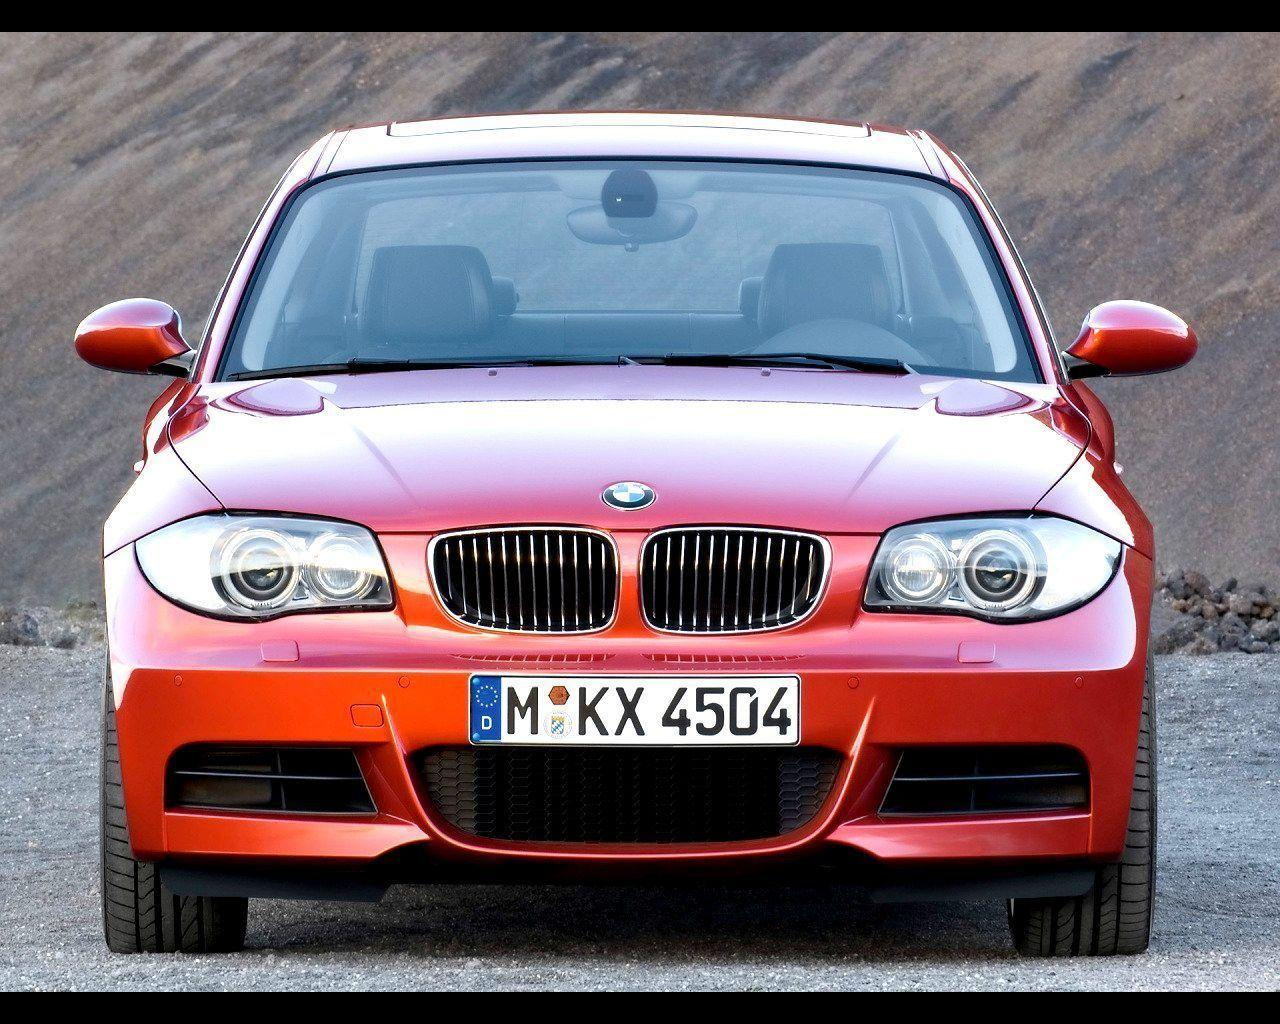 2008 BMW 1 Series Coupe Wallpaper 05 - 1280x1024